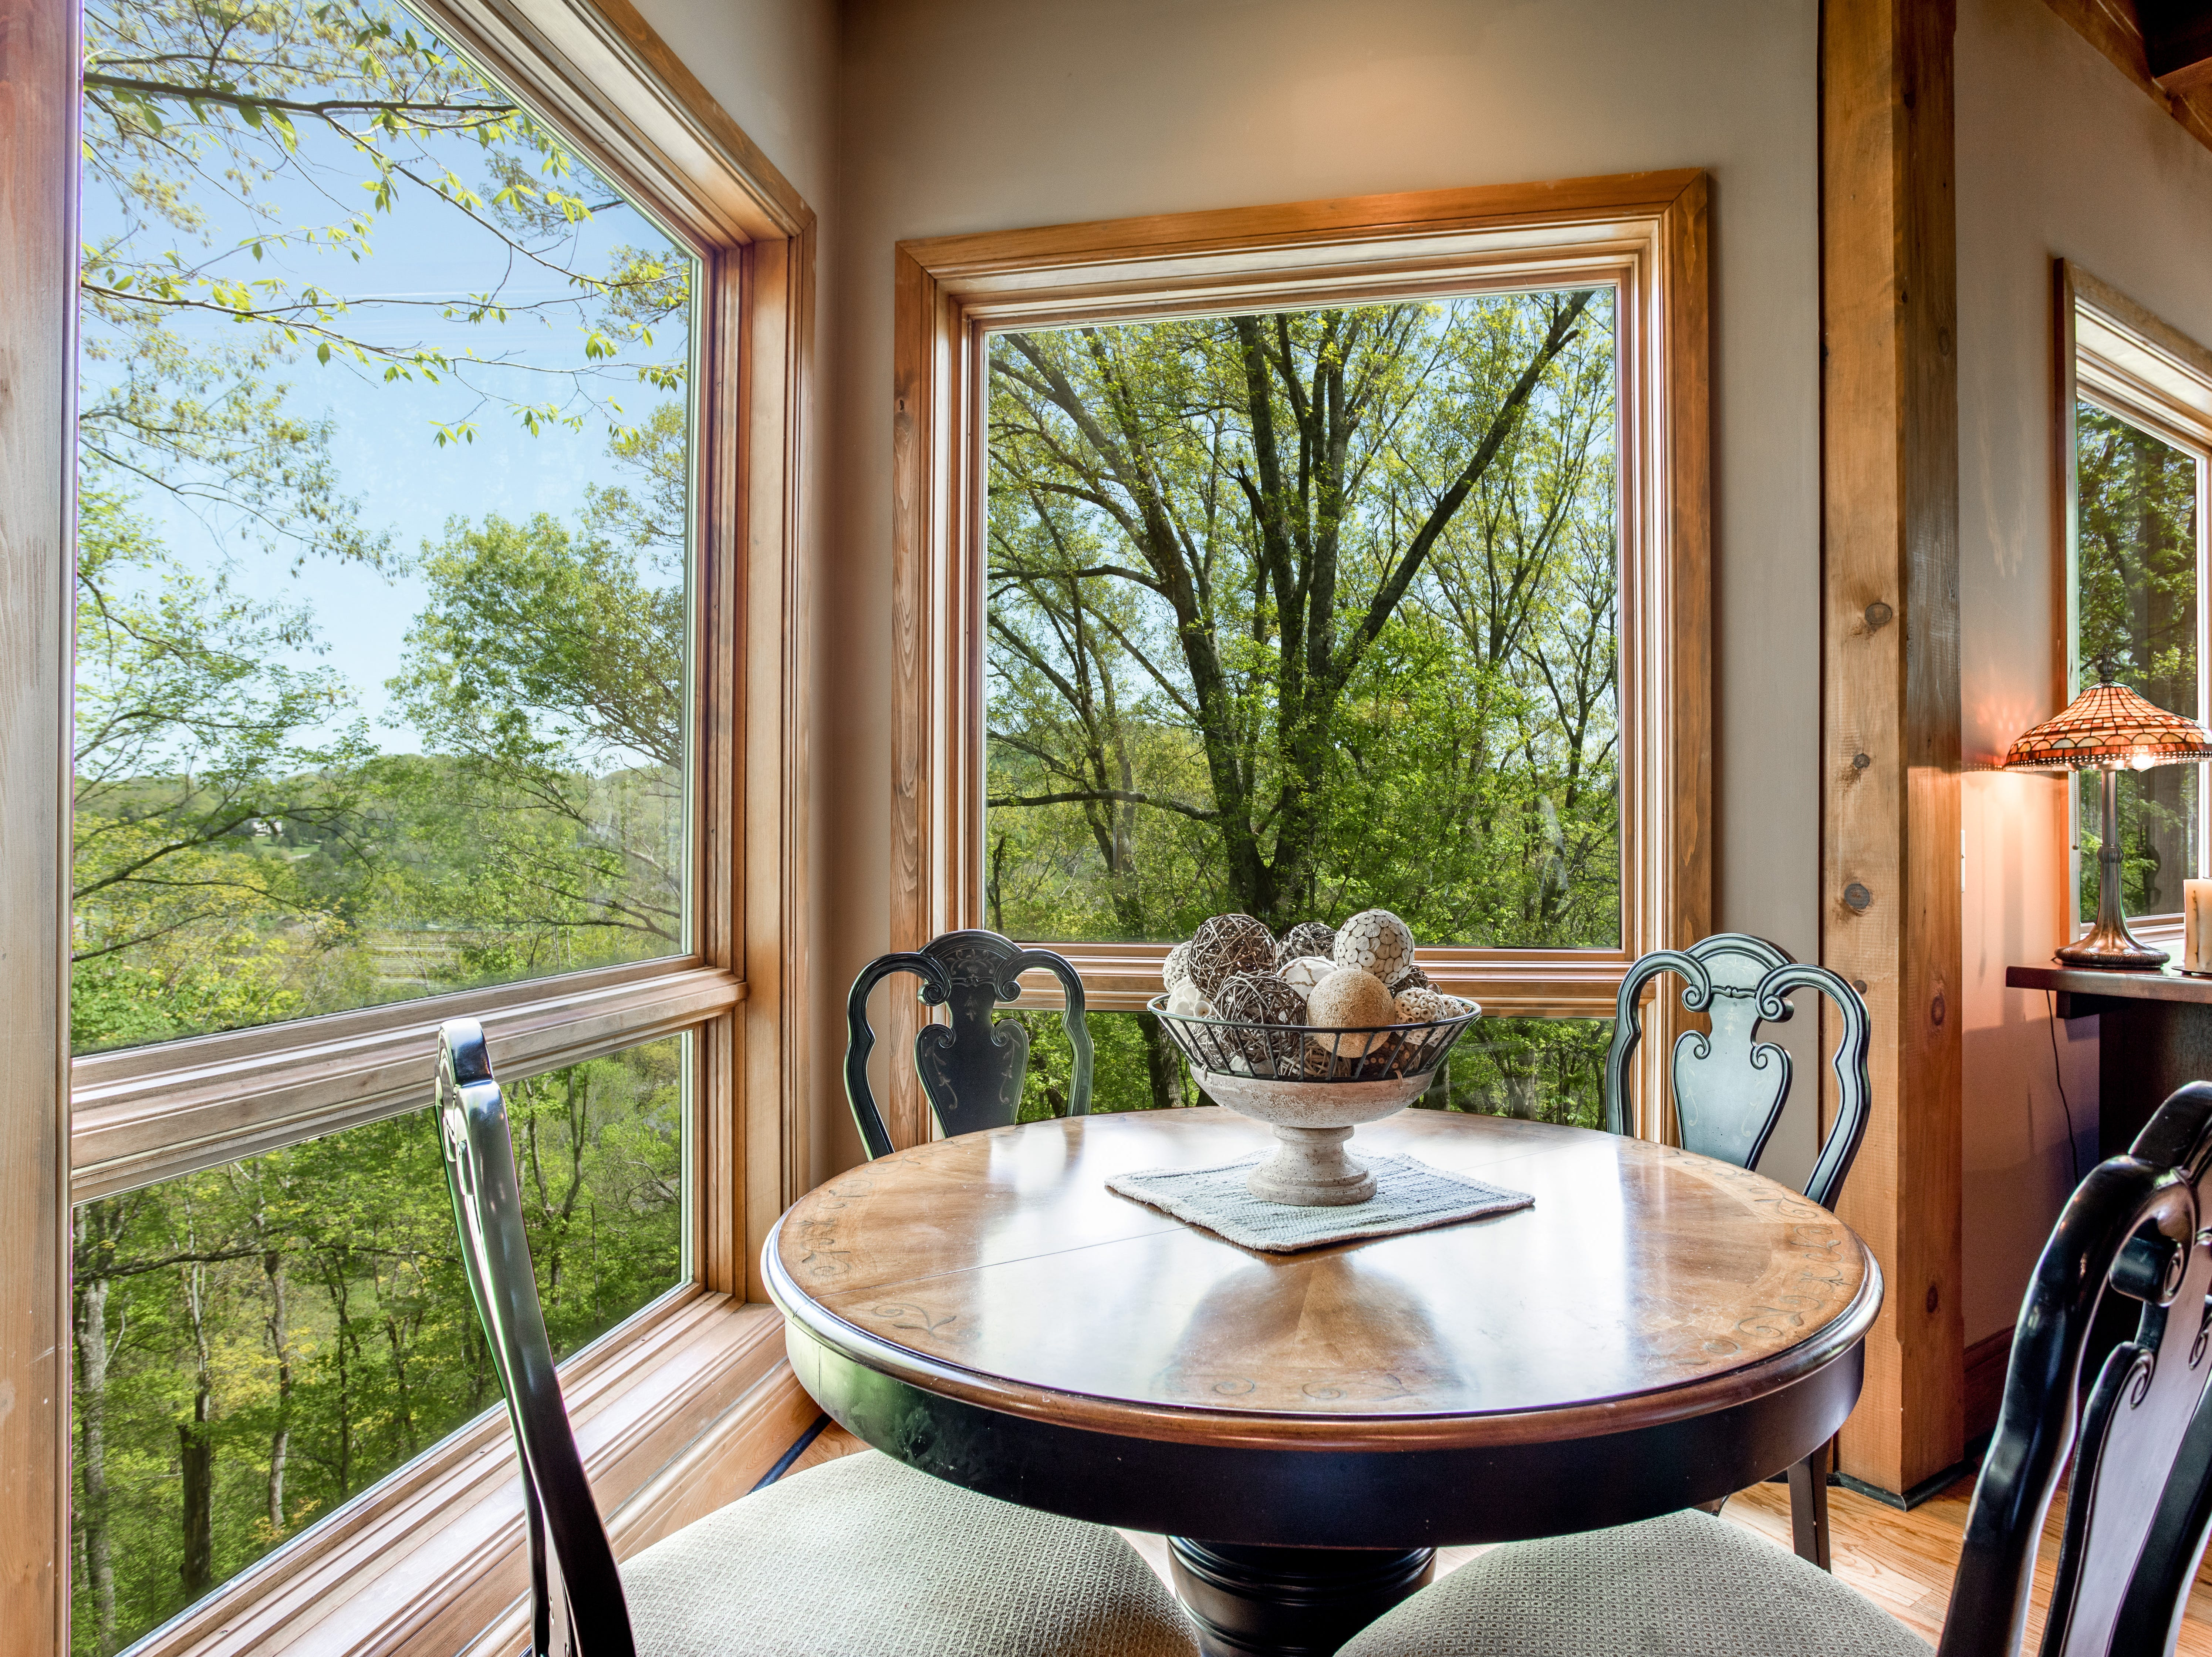 Another example of the views from this home, which has massive windows to maximize the views.